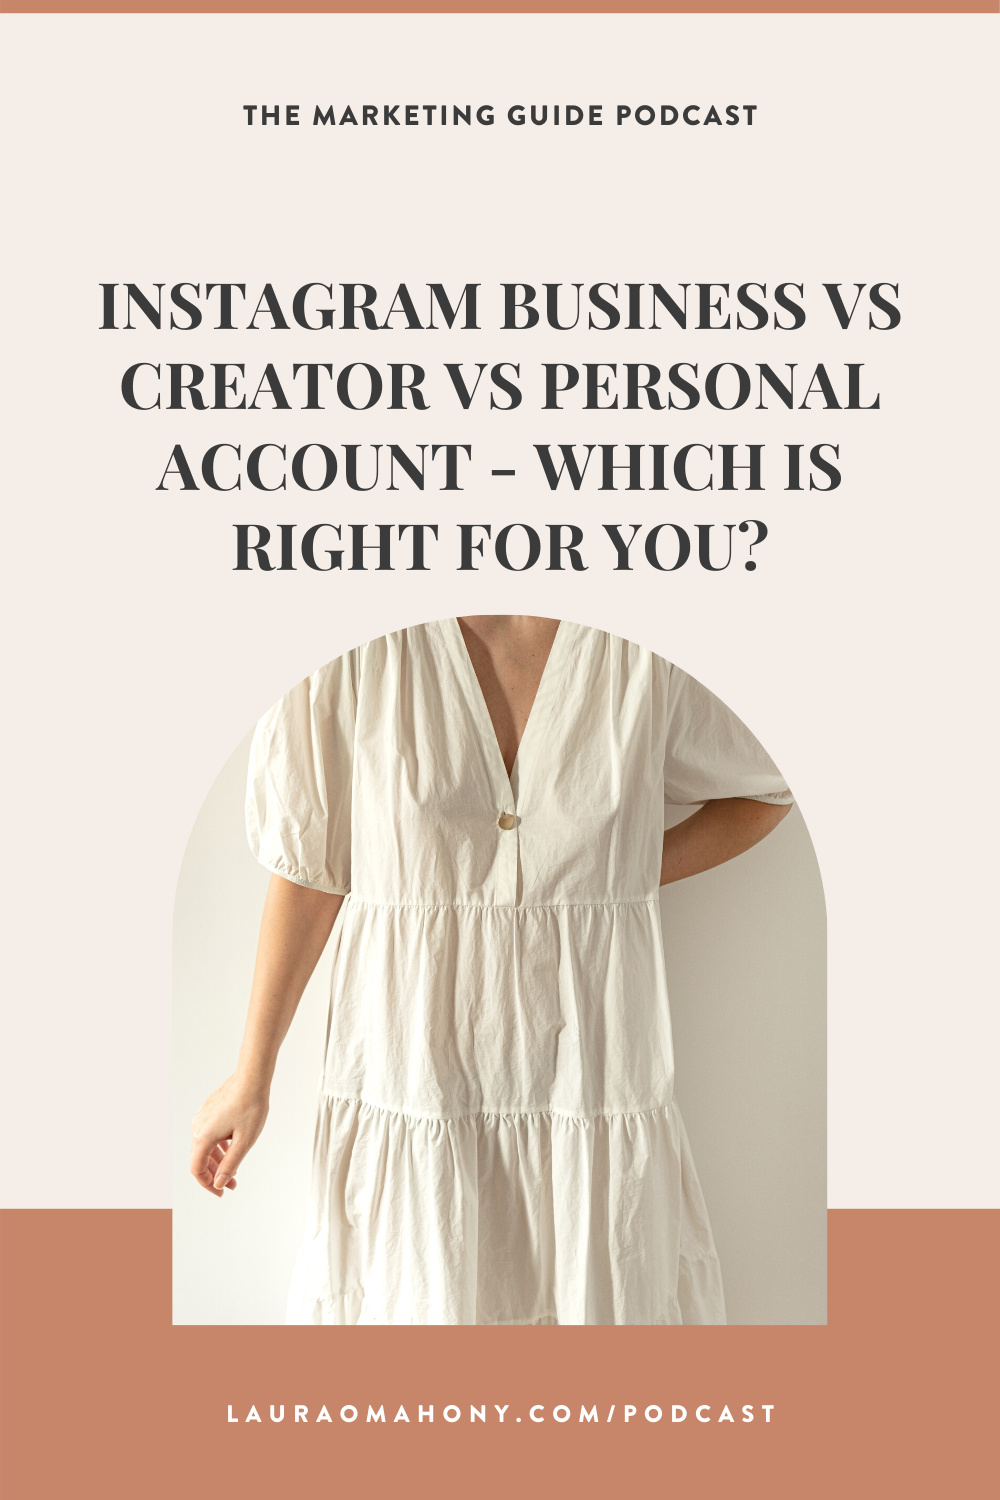 Episode 66 - Instagram Business Vs Creator Vs Personal Account - Which is right for you?